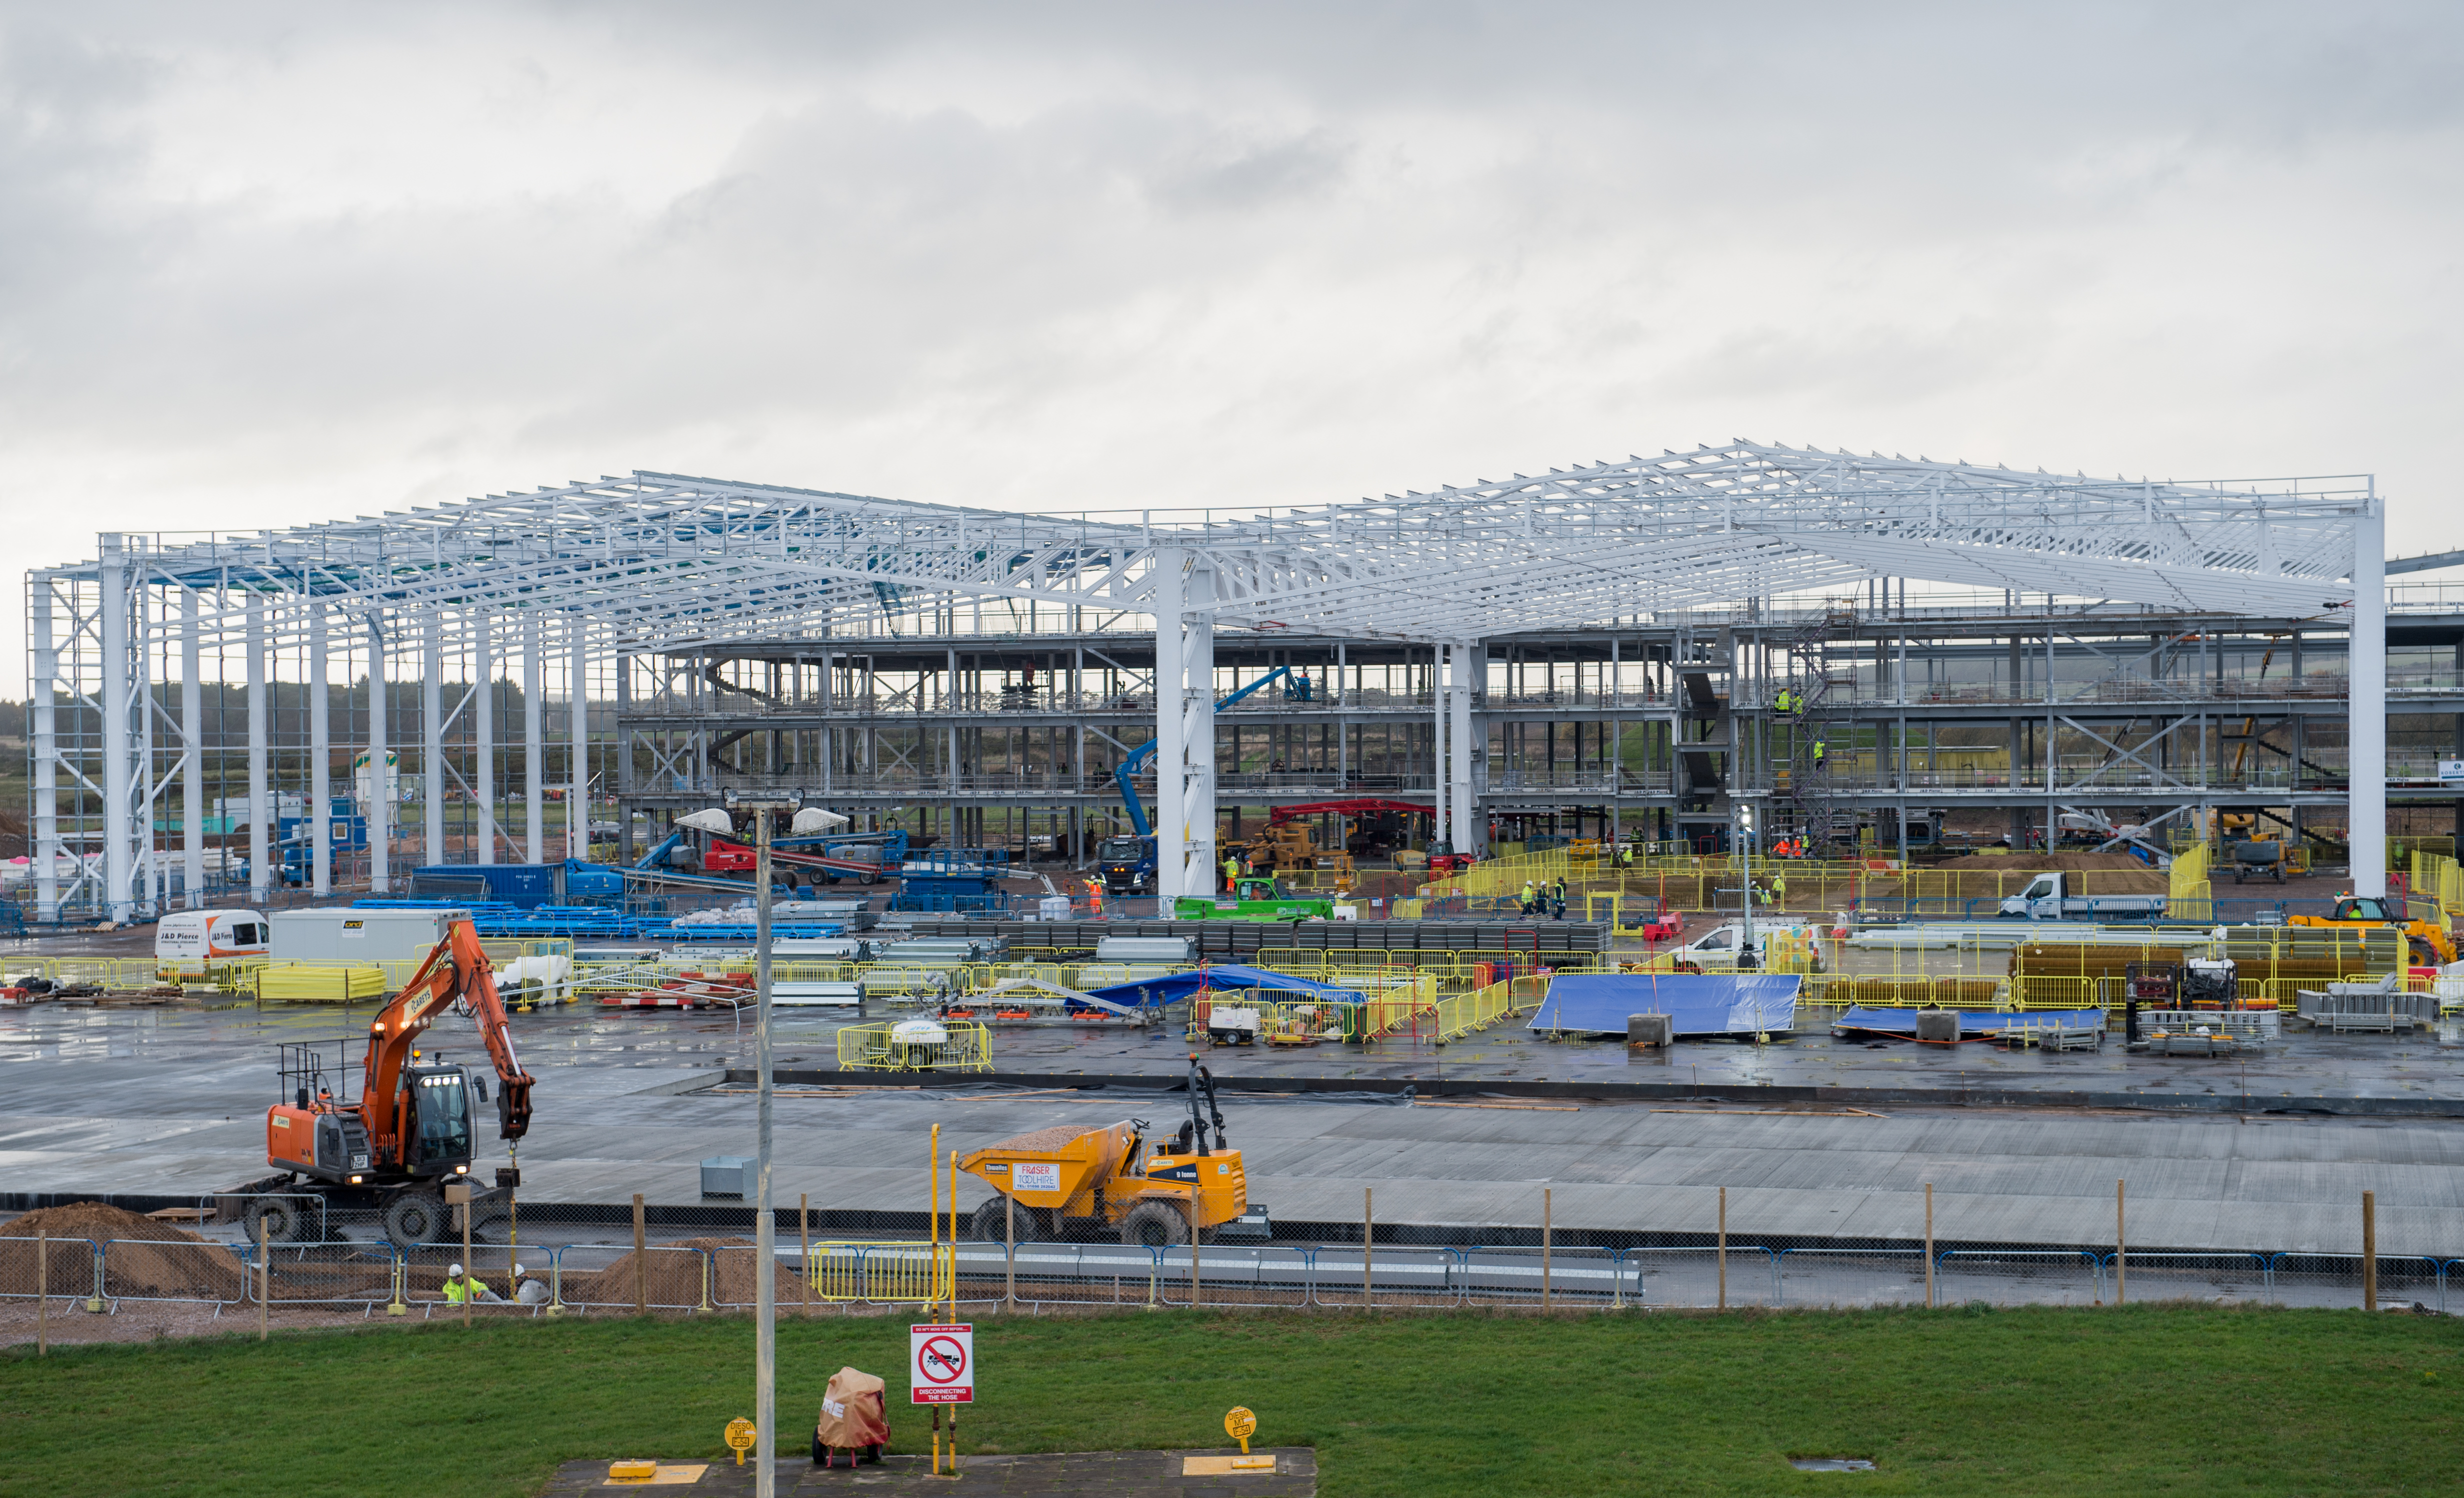 Construction is underway on the new hangar at RAF Lossiemouth.